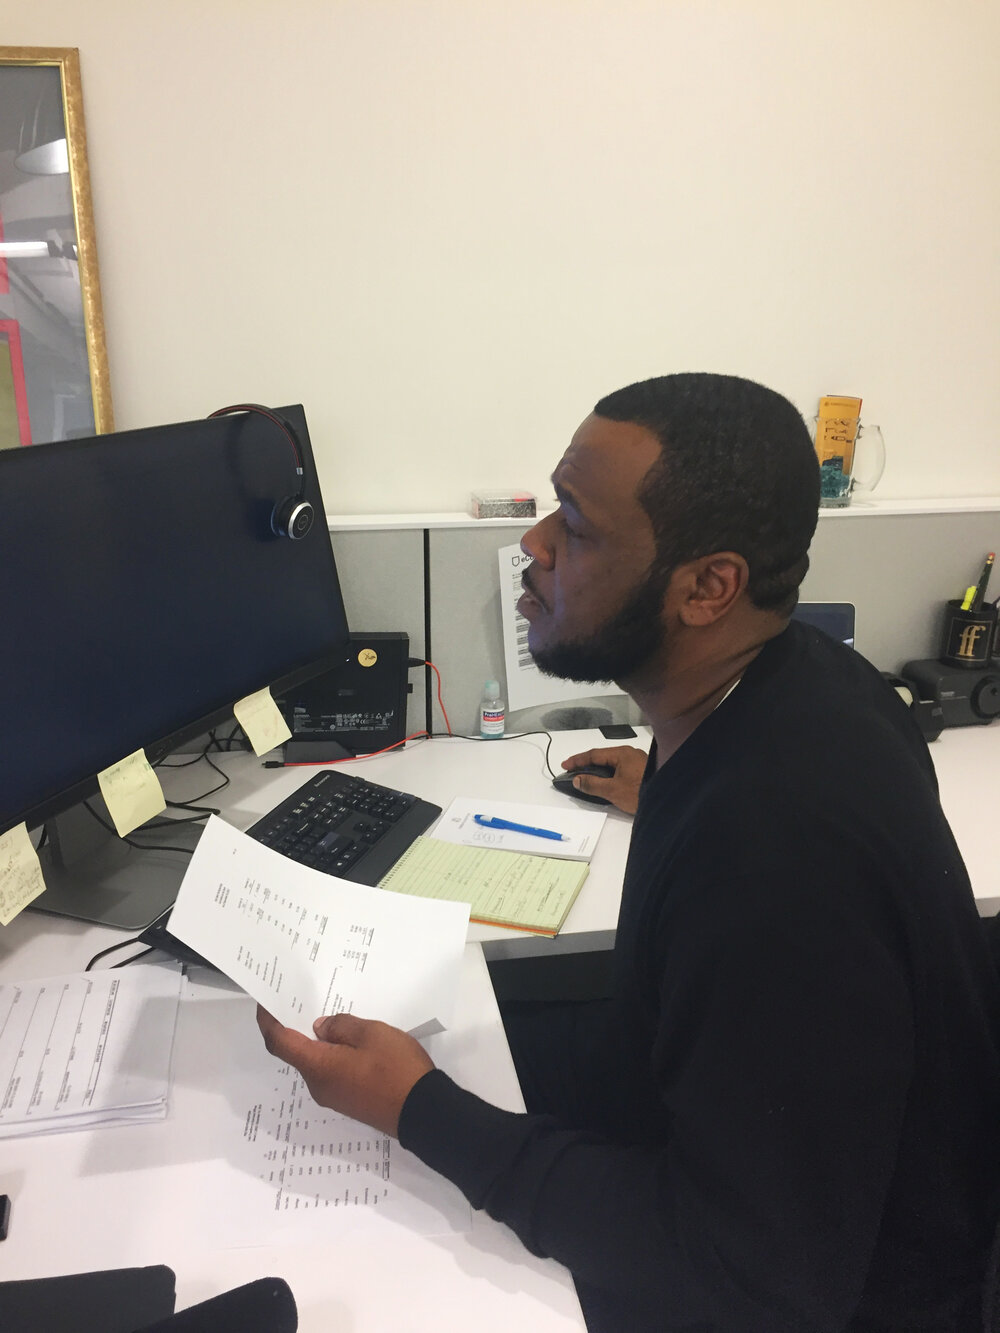 Lavar Gibson working at a computer desk.